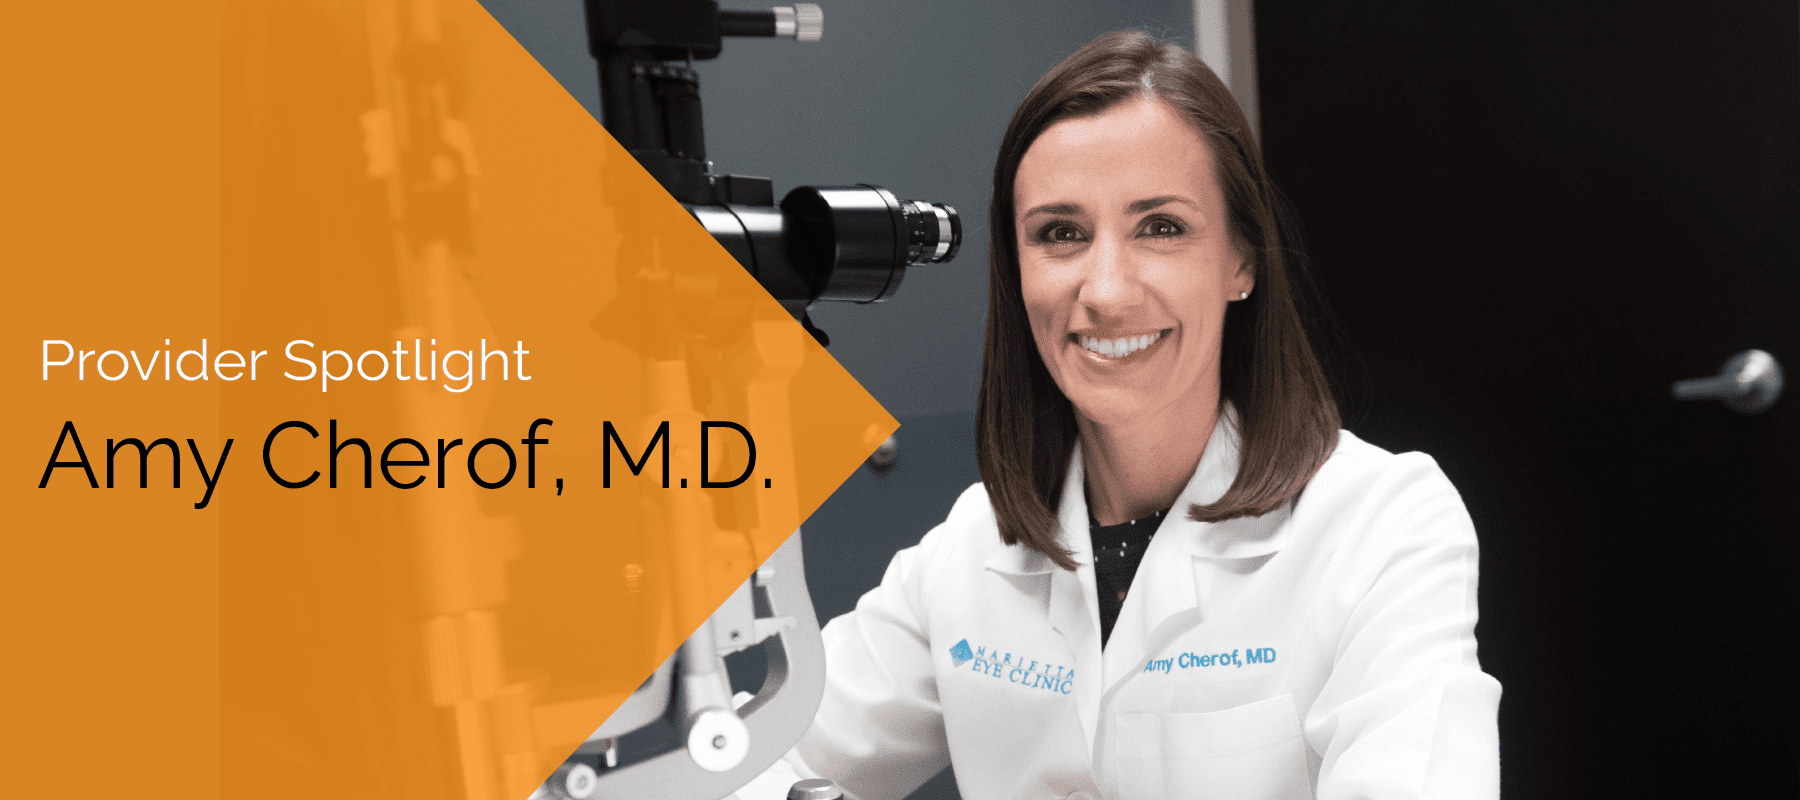 Dr. Cherof is an ophthalmologist and cataract surgeon at the Marietta Eye Clinic.